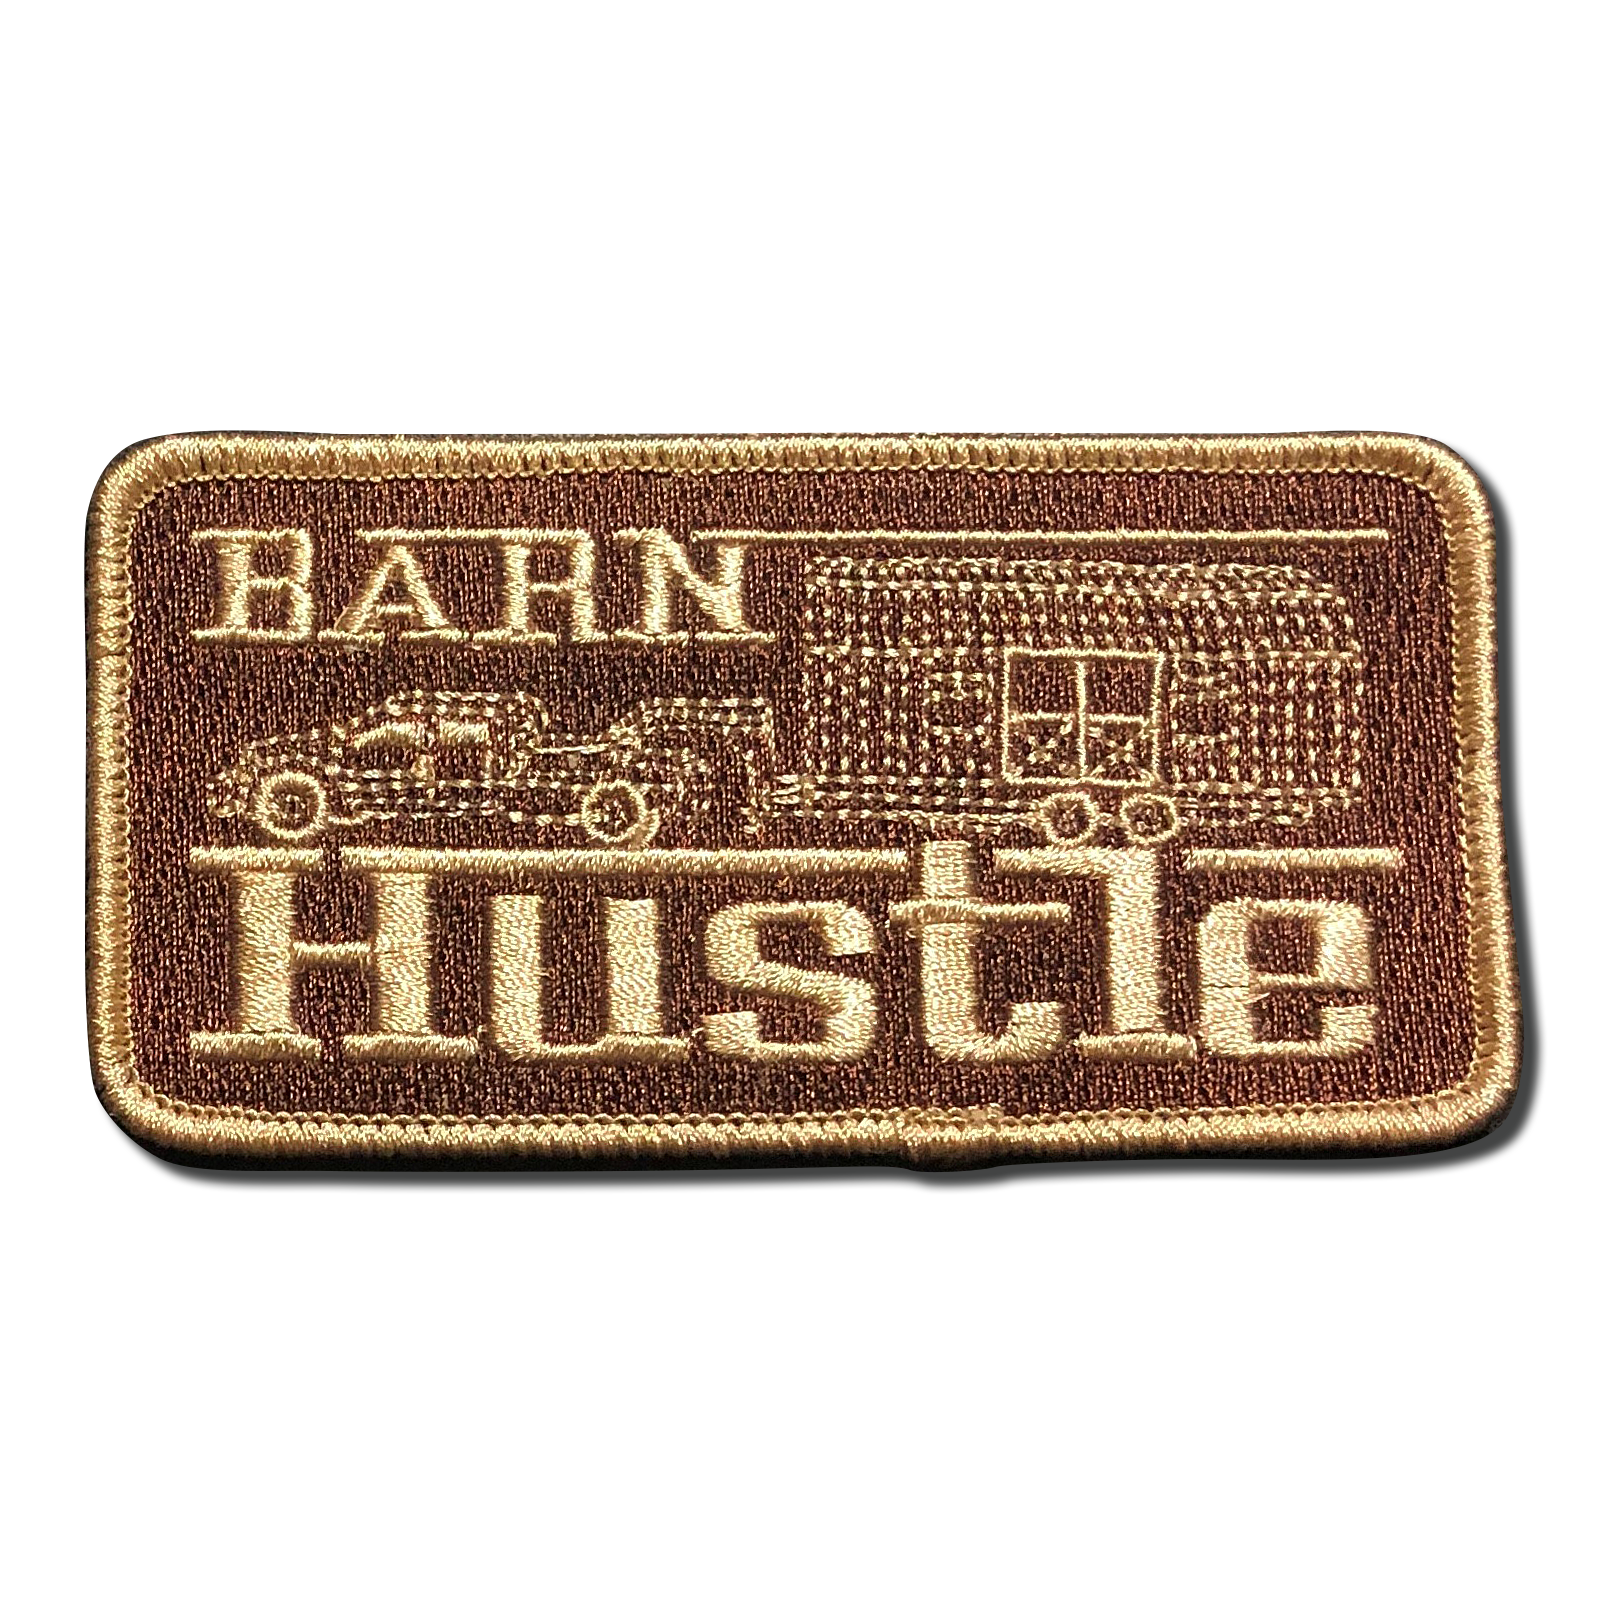 Barn Hustle Patch in Brown and Gold. Photo Gallery Image from A-B Emblem.